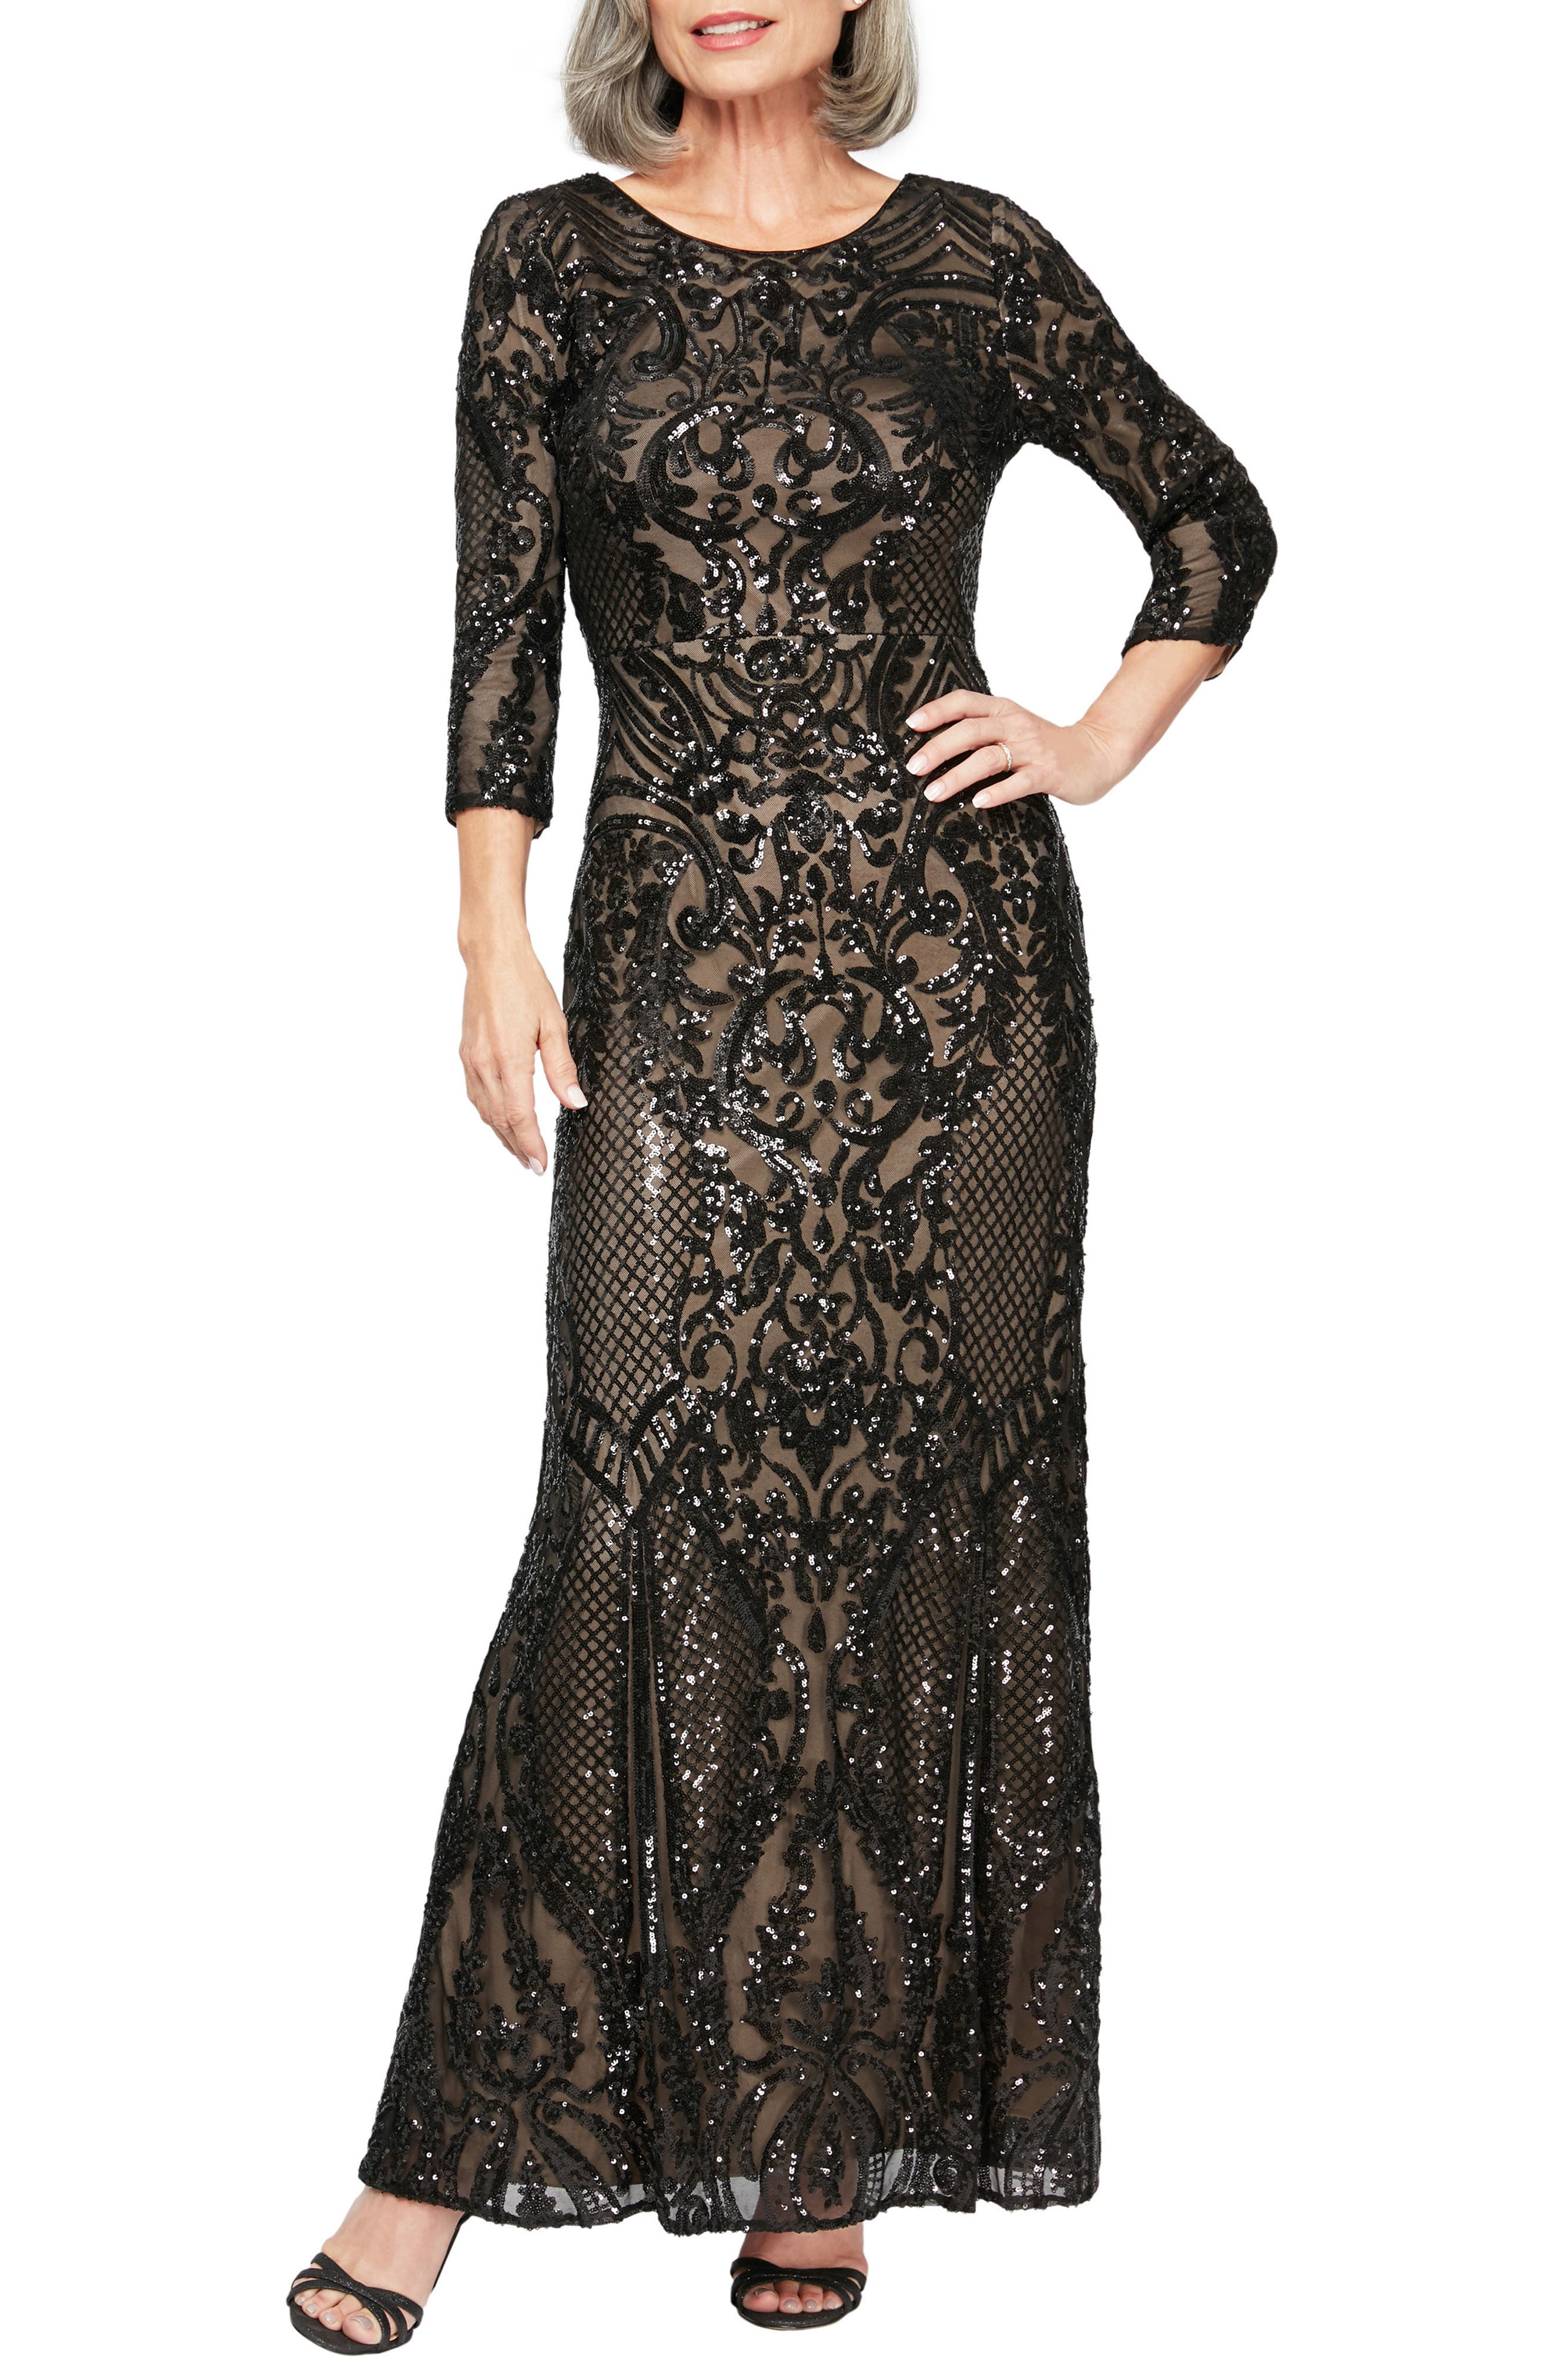 Art Deco Dresses | Art Deco Fashion, Clothing Womens Alex Evenings Sequin Embroidered Tulle Evening Dress Size 4 - Black $269.00 AT vintagedancer.com